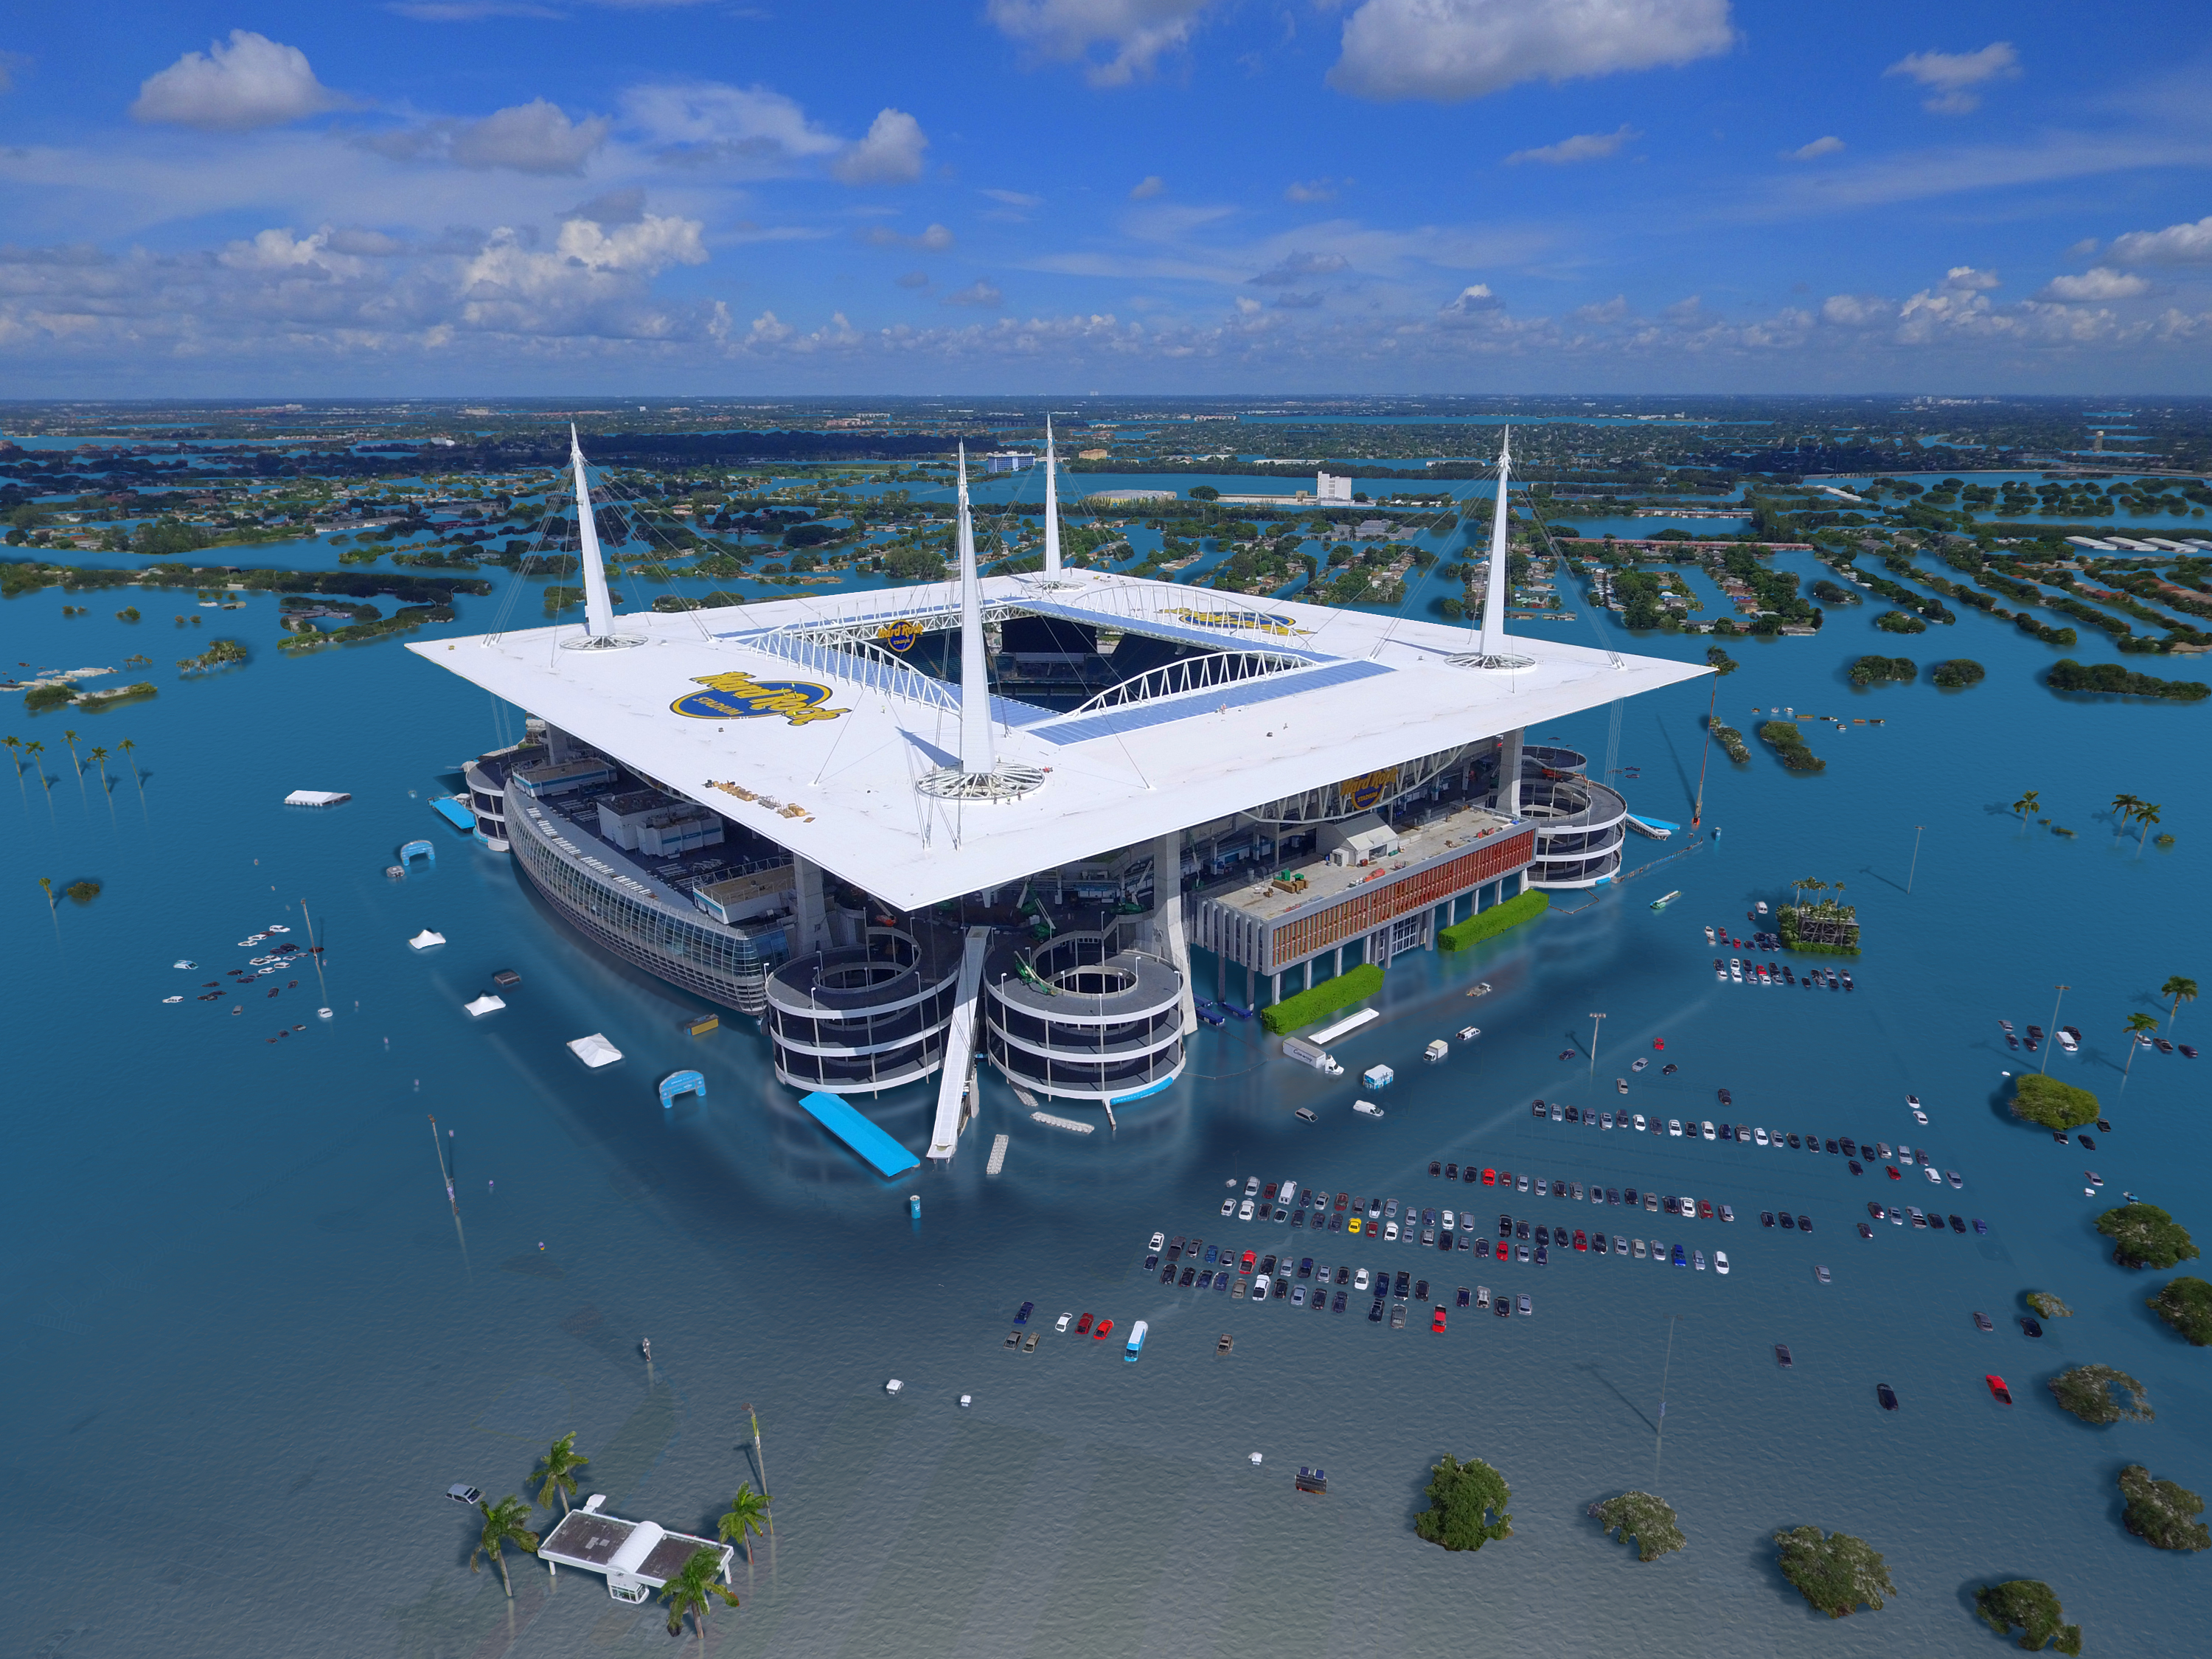 2020 Super Bowl: Sea Level Rise Flood Risk